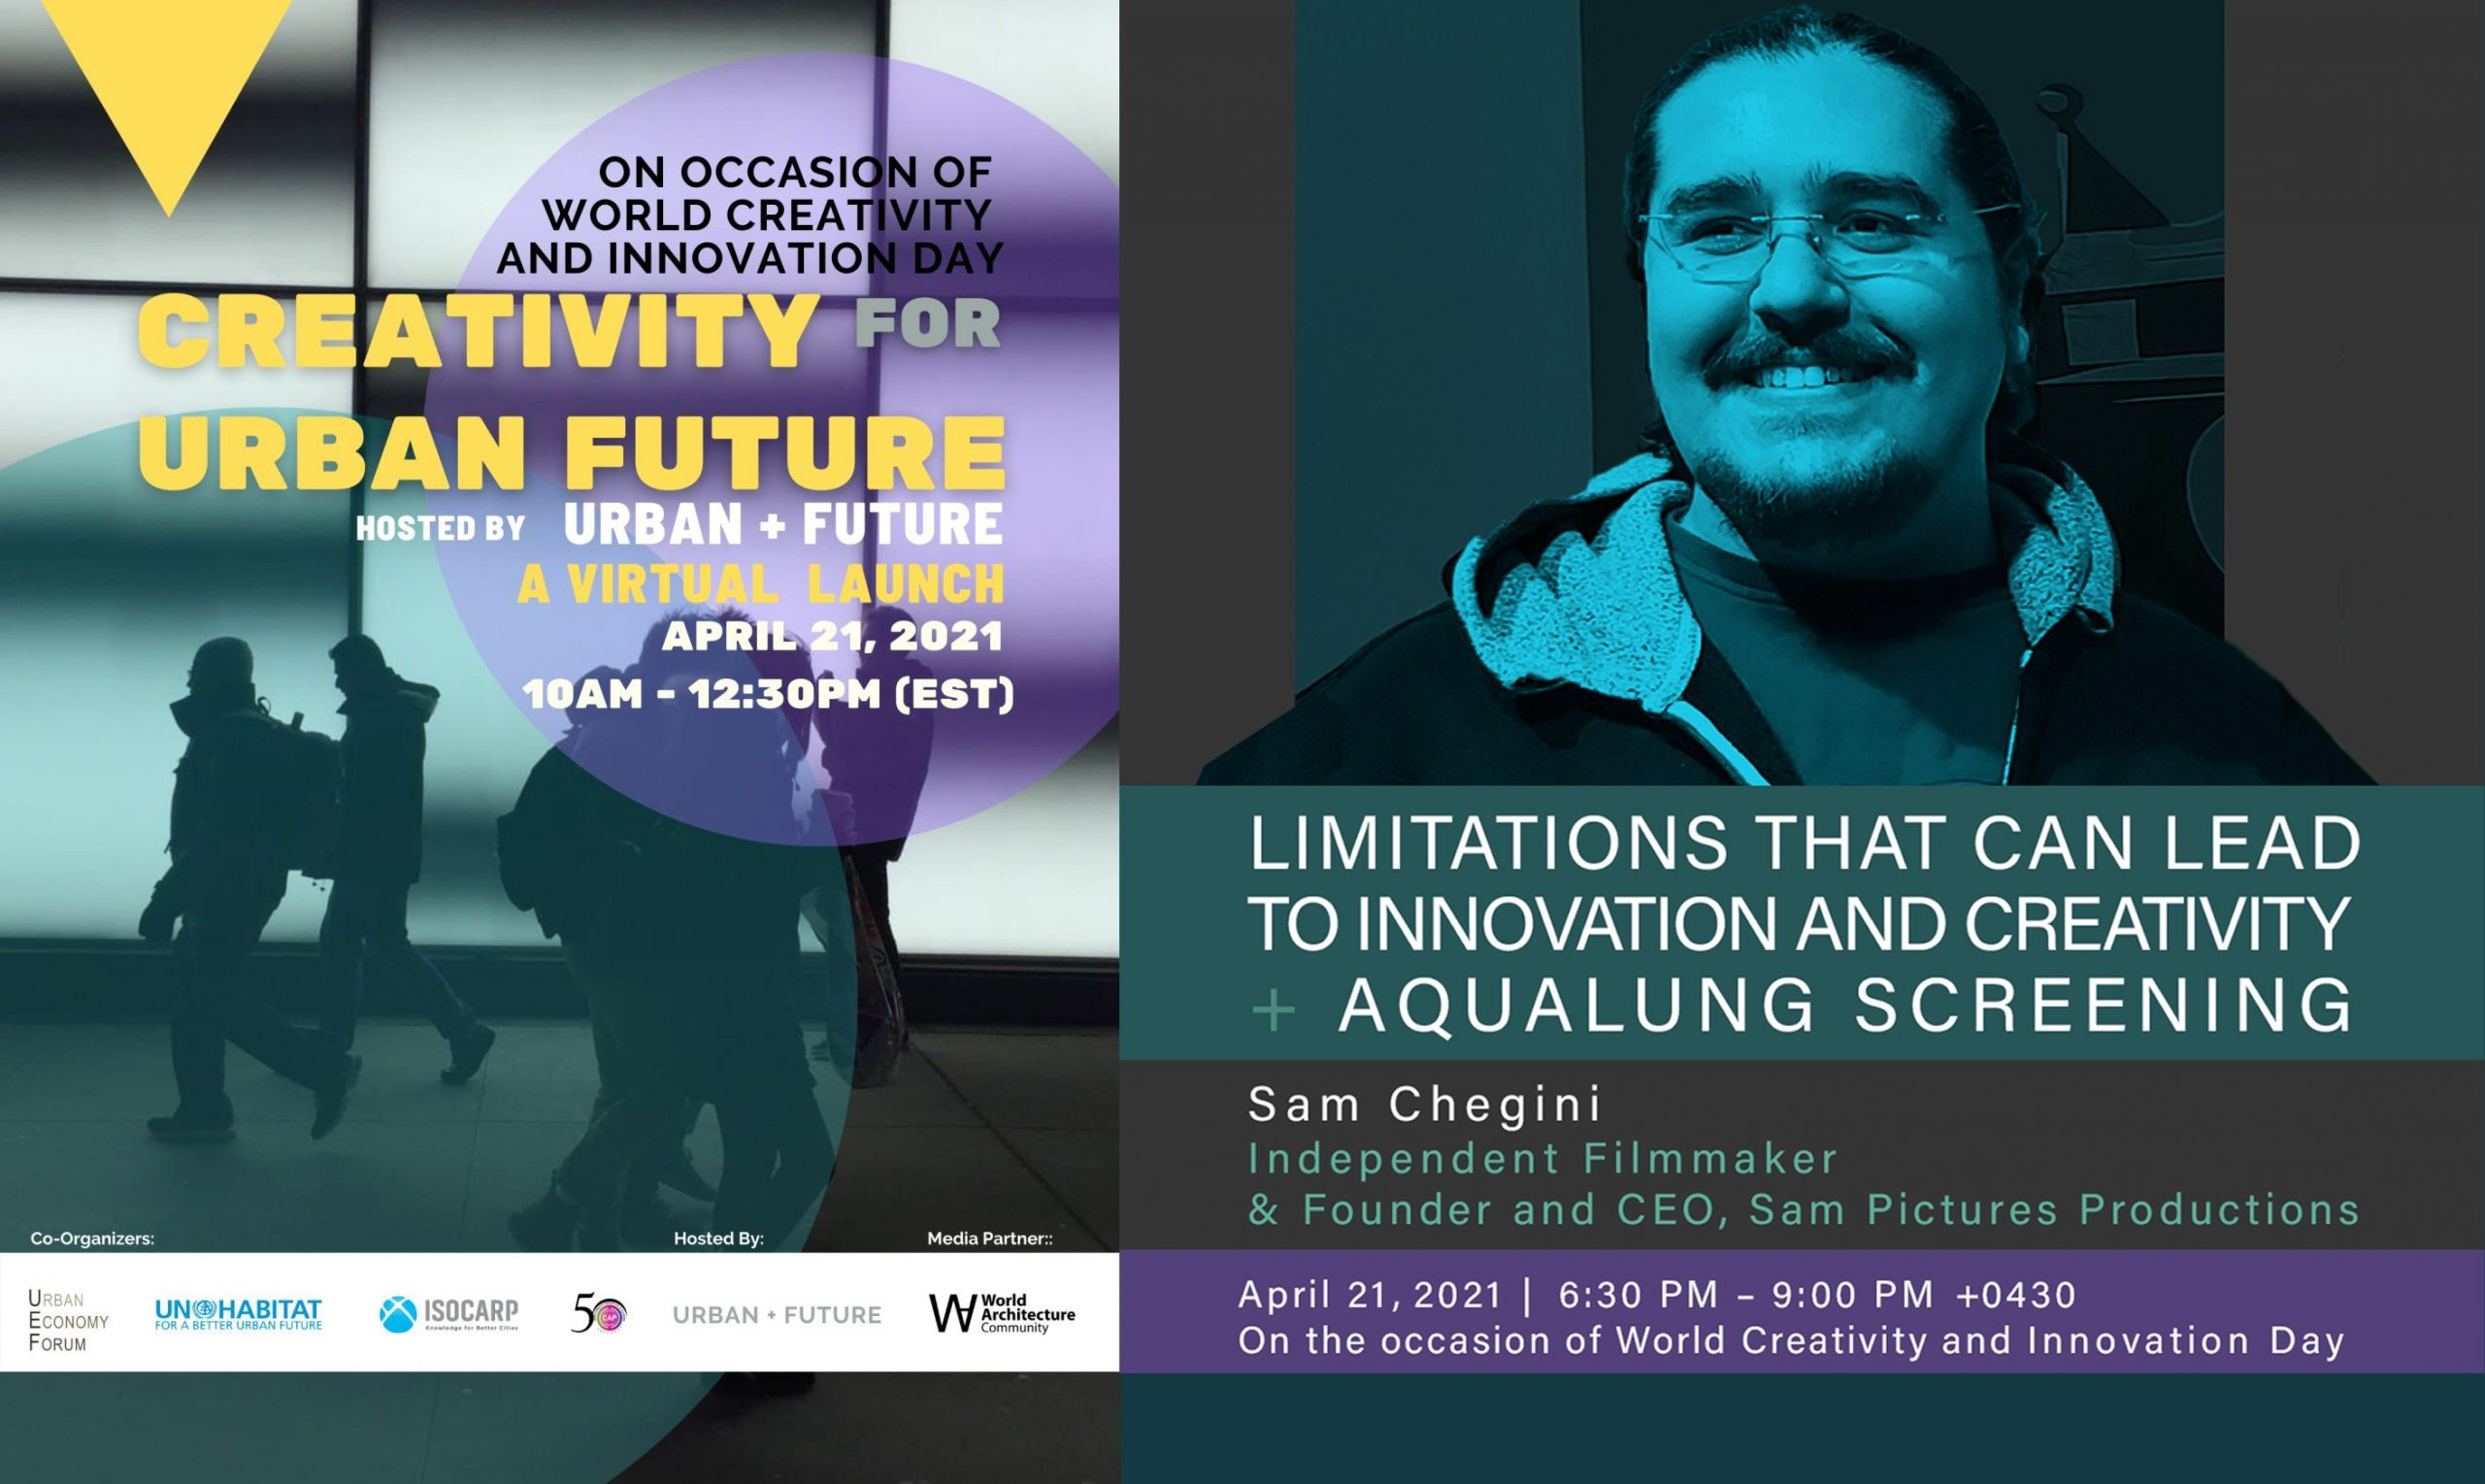 Sam Chegini UN Speech on the occasion of World Creativity and Innovation Day